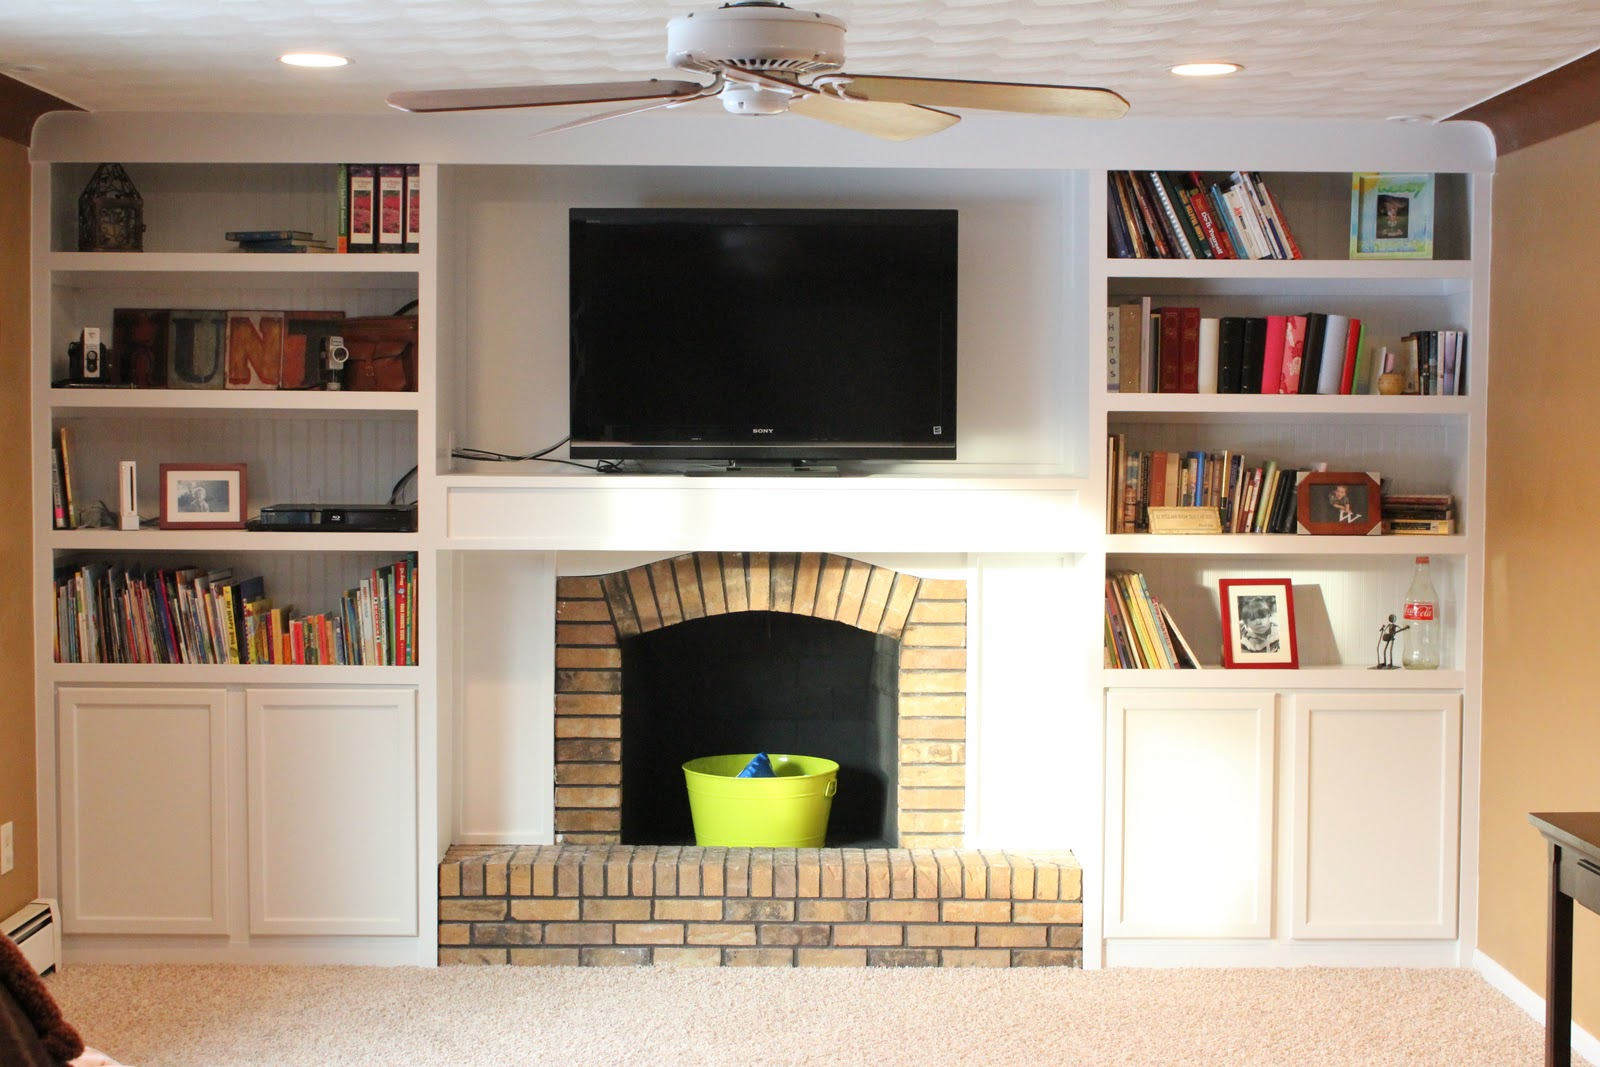 Remodelaholic Fireplace Remodel With Builtin Bookshelves - Fireplace with bookshelves